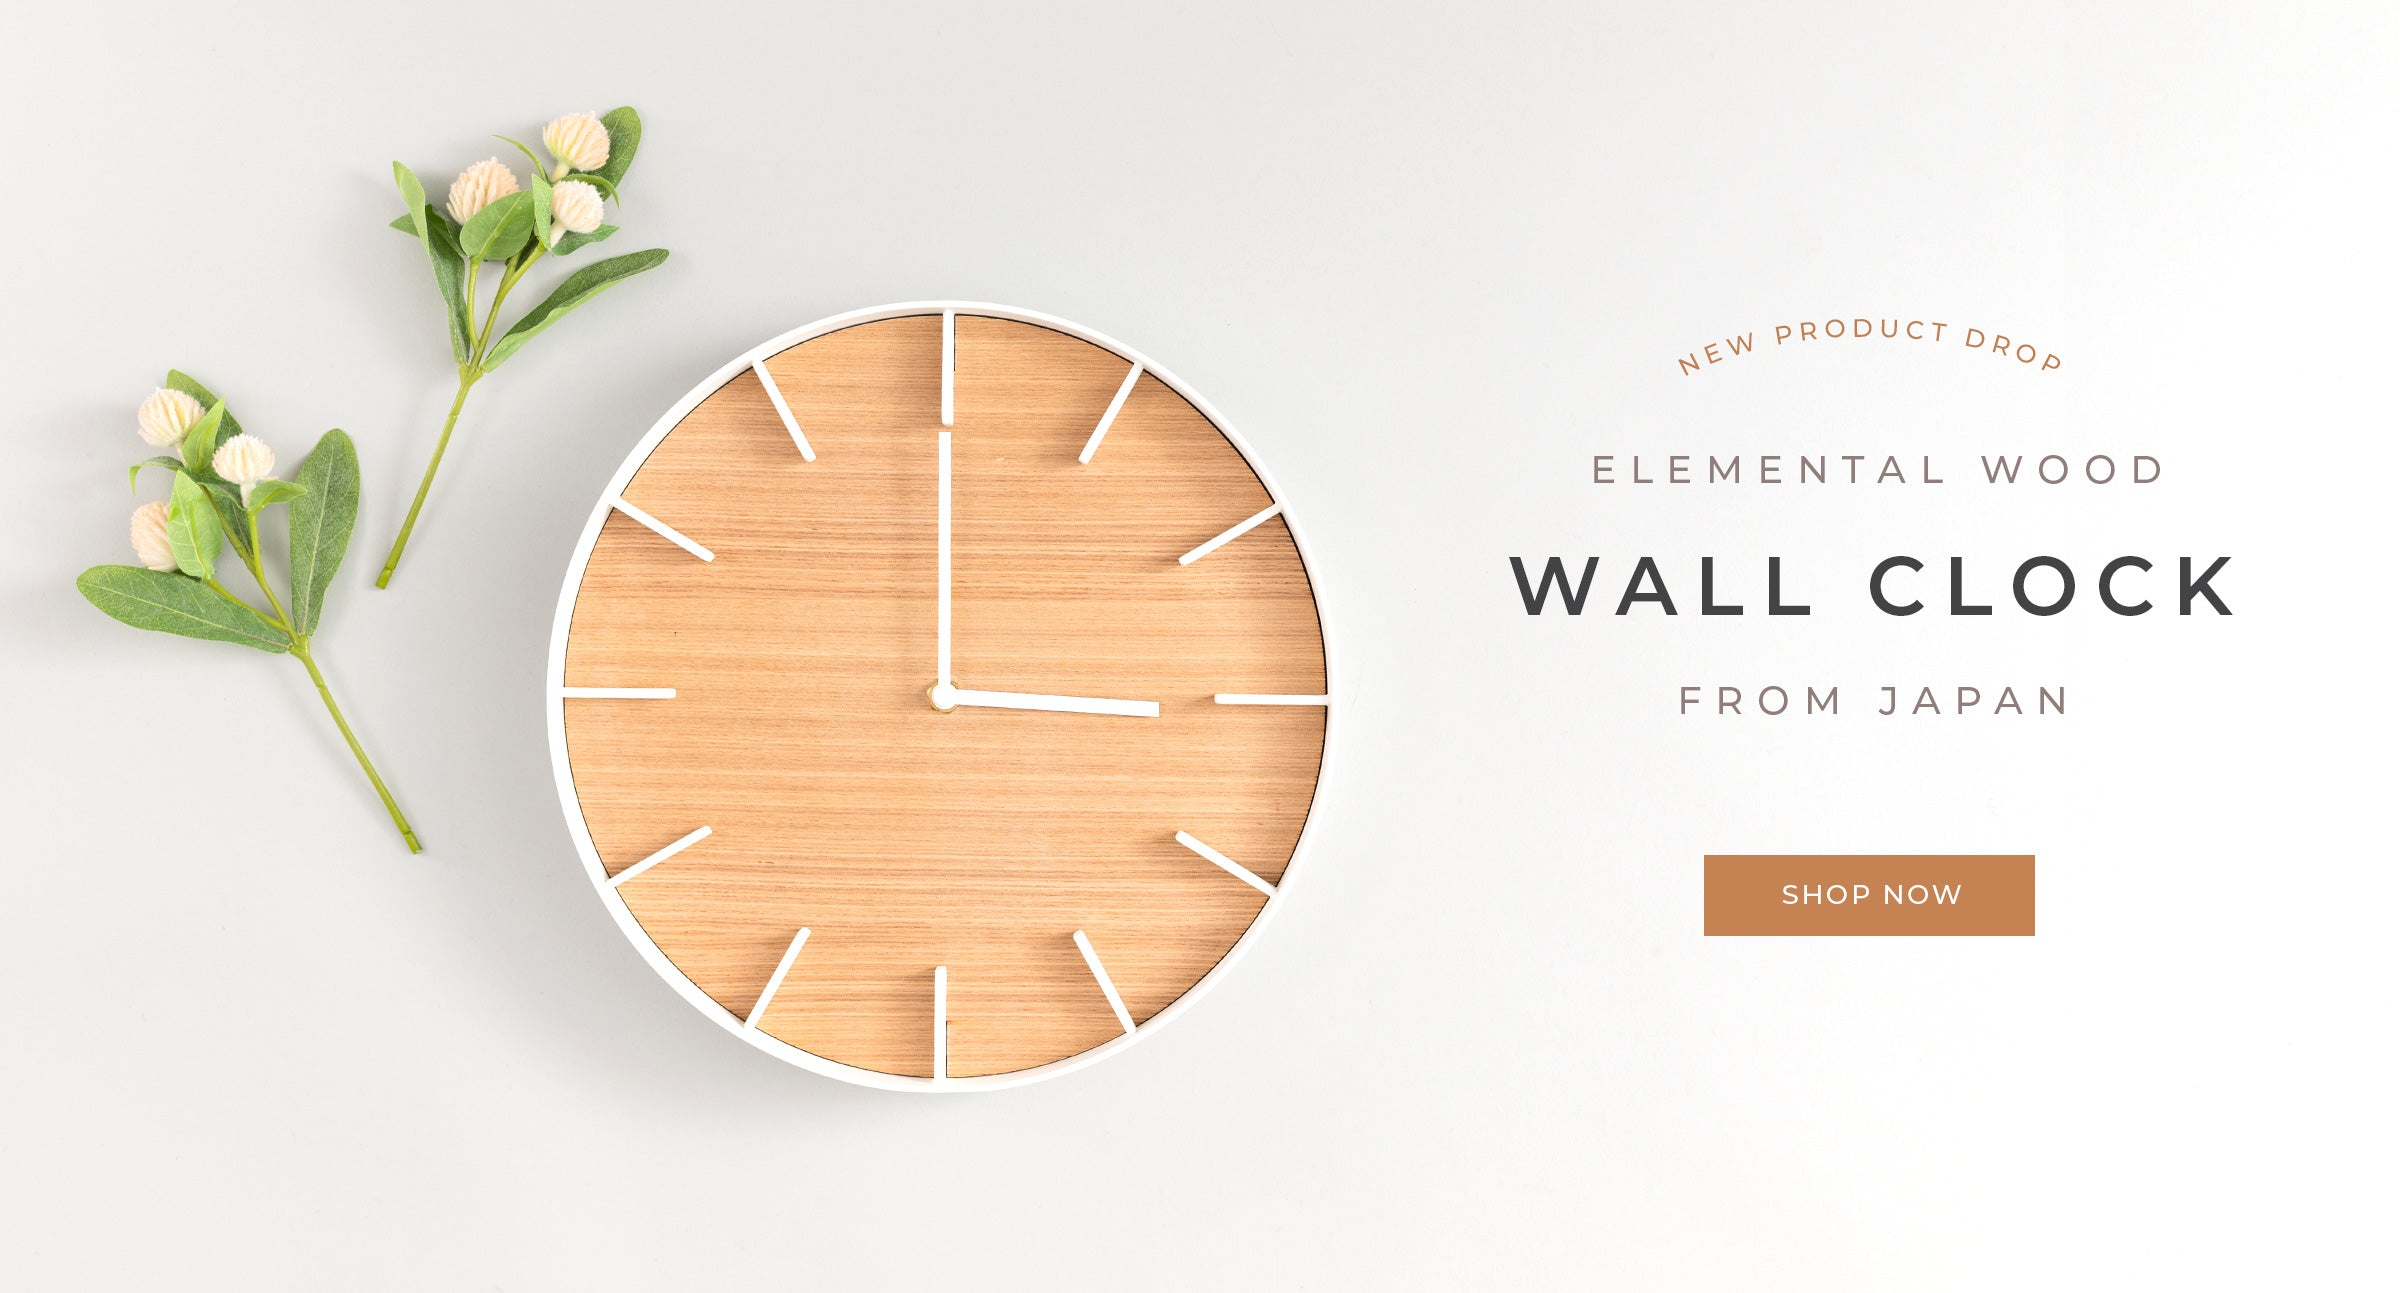 Elemental Wood Wall Clock from Japan